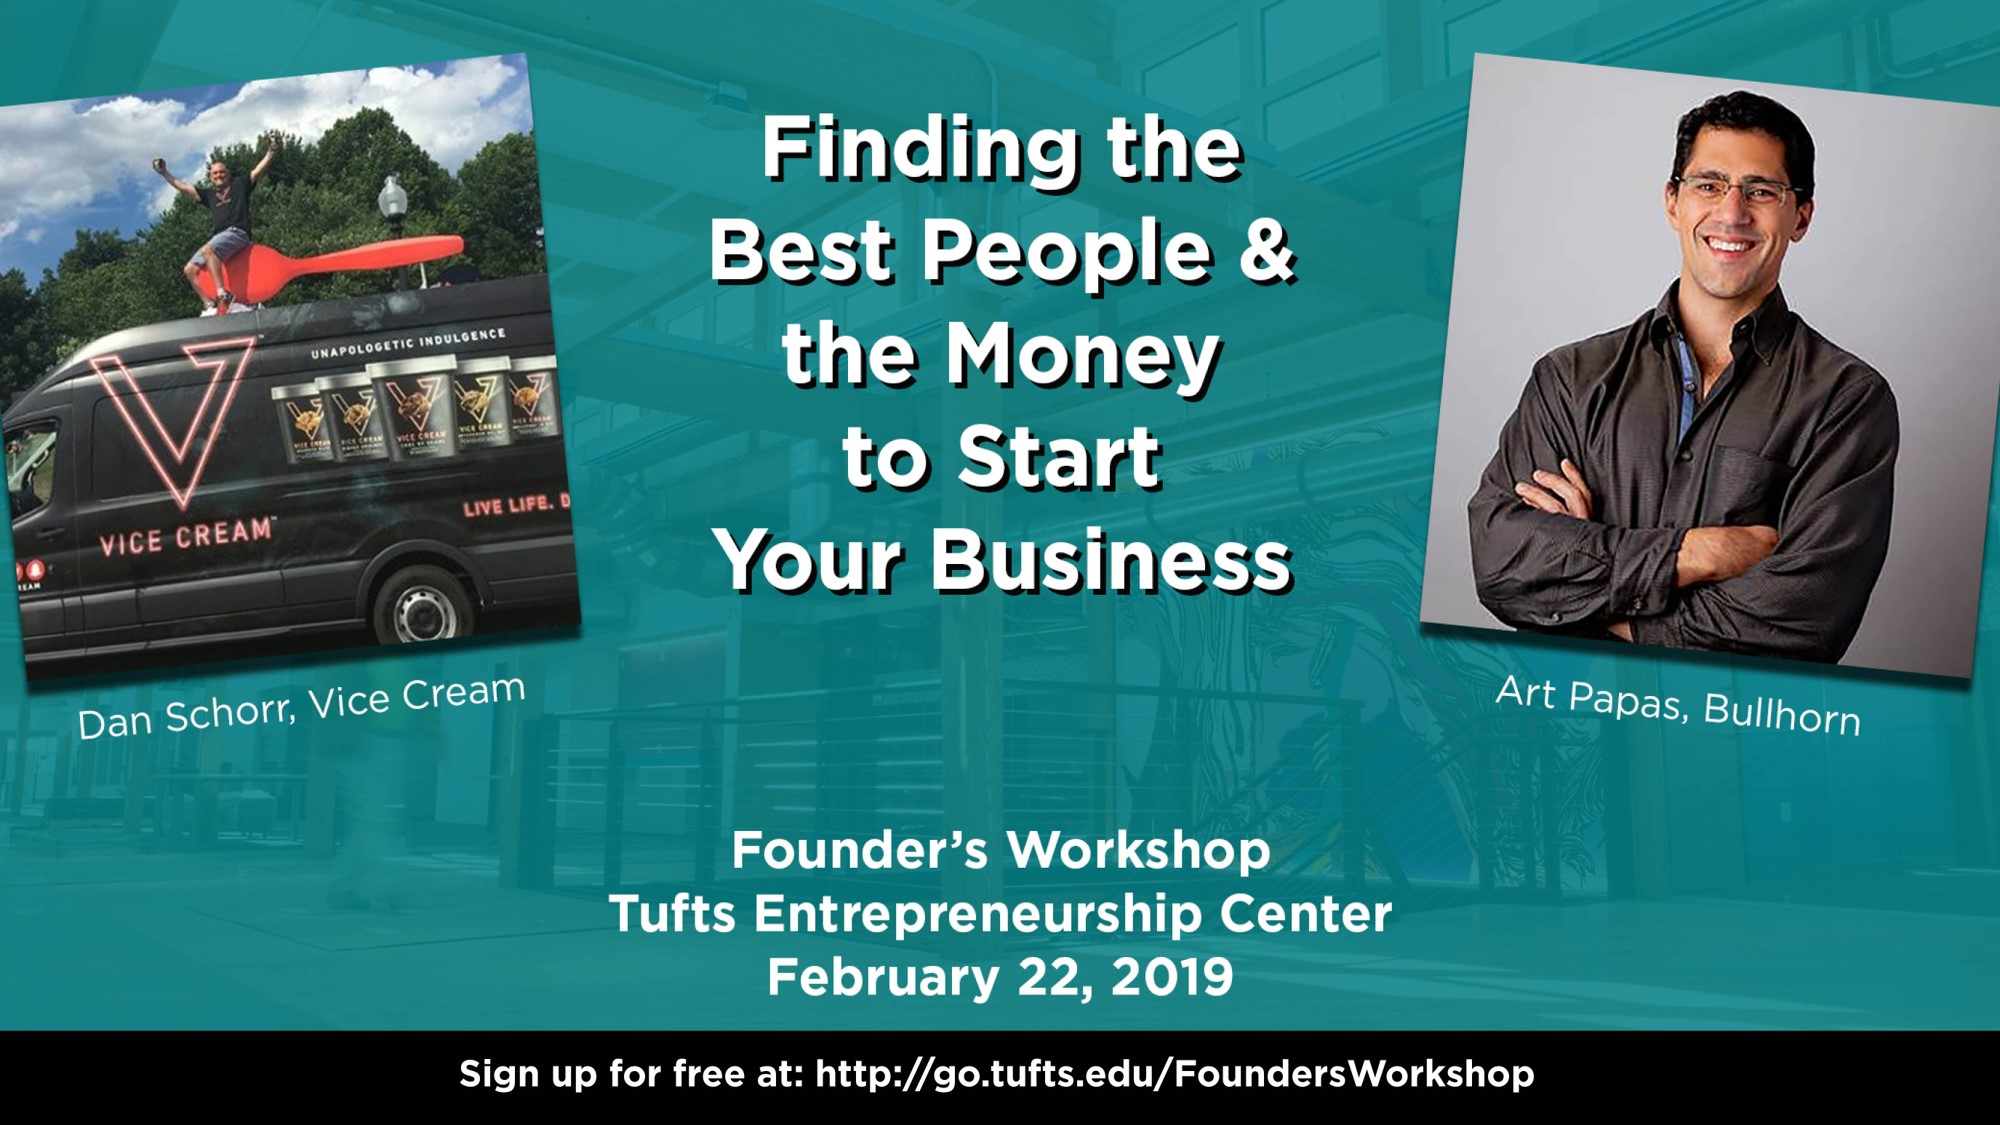 2018 Founder's Workshop 101918-102018